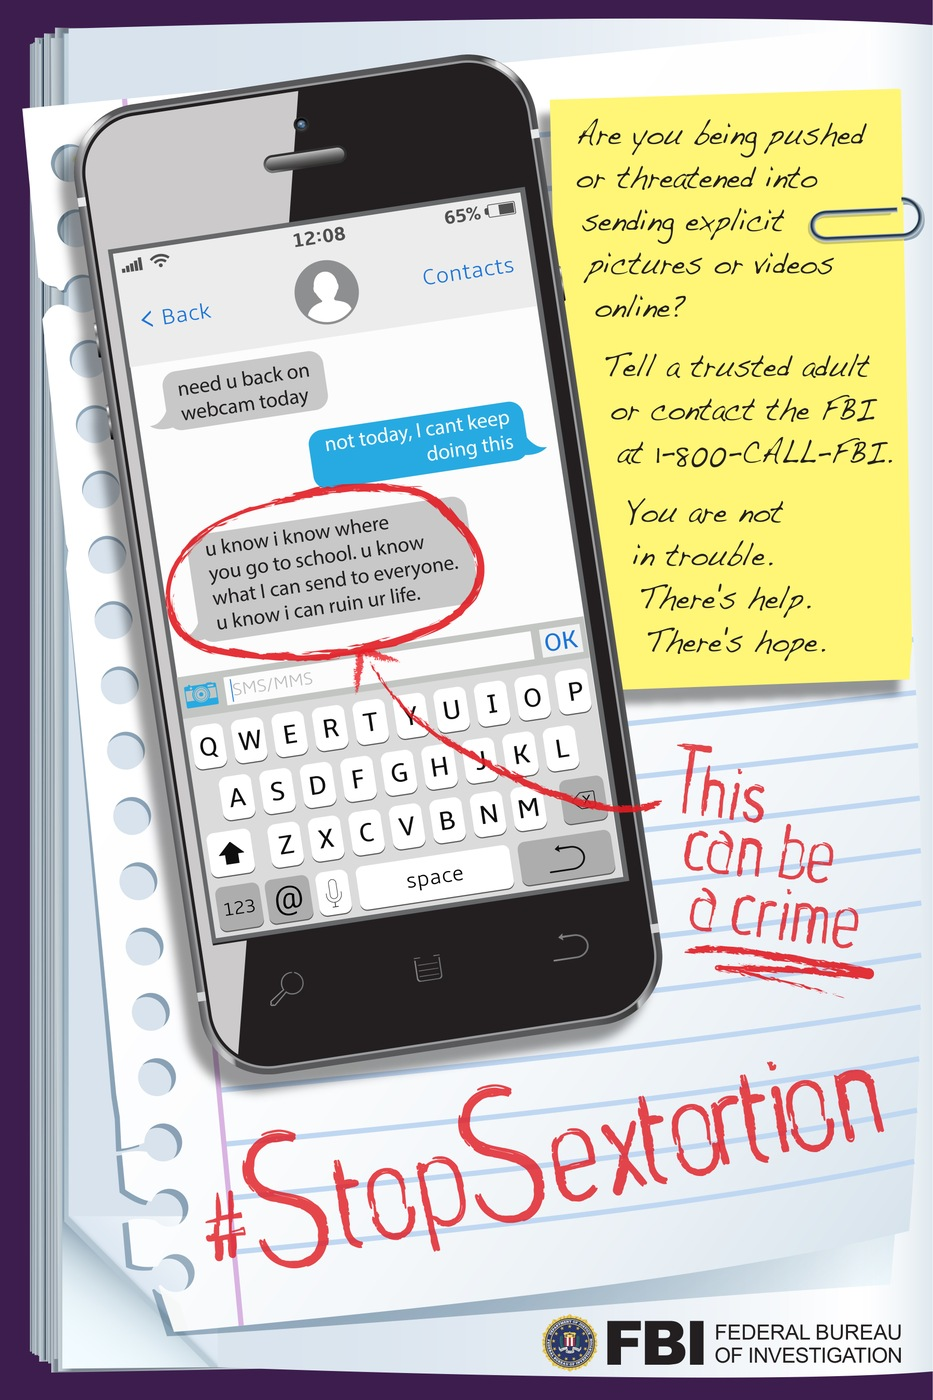 Poster encouraging young people to report sextortion to the FBI if they are a victim.